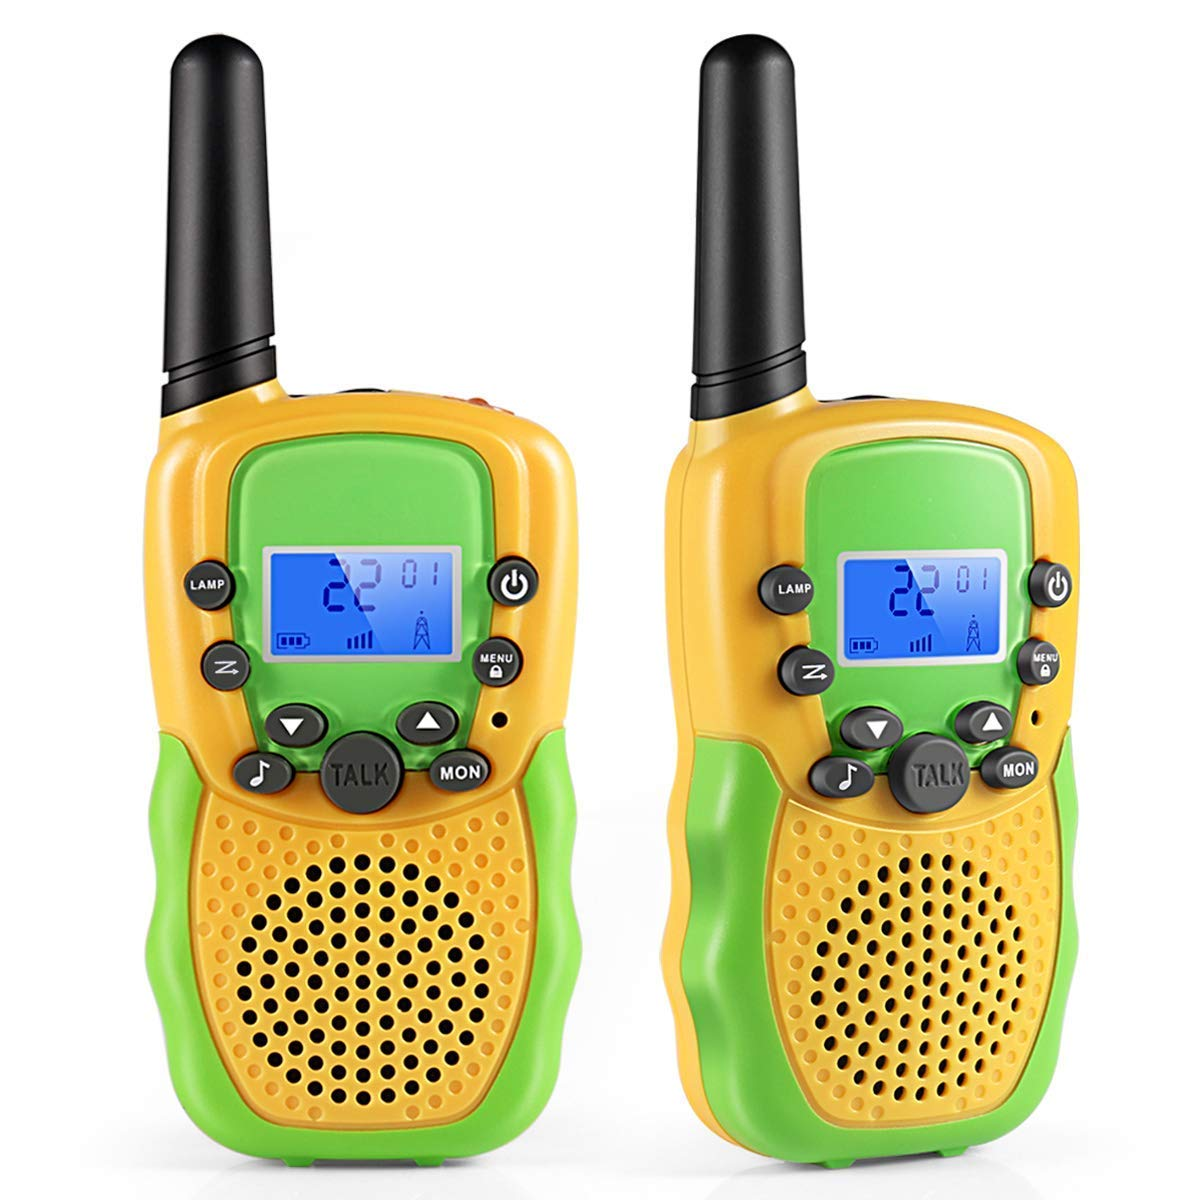 1c88e11731d8e4 Cakie Walkie Talkies for Kids, 22 Channel FRS/GMRS 2 Way Radio (up